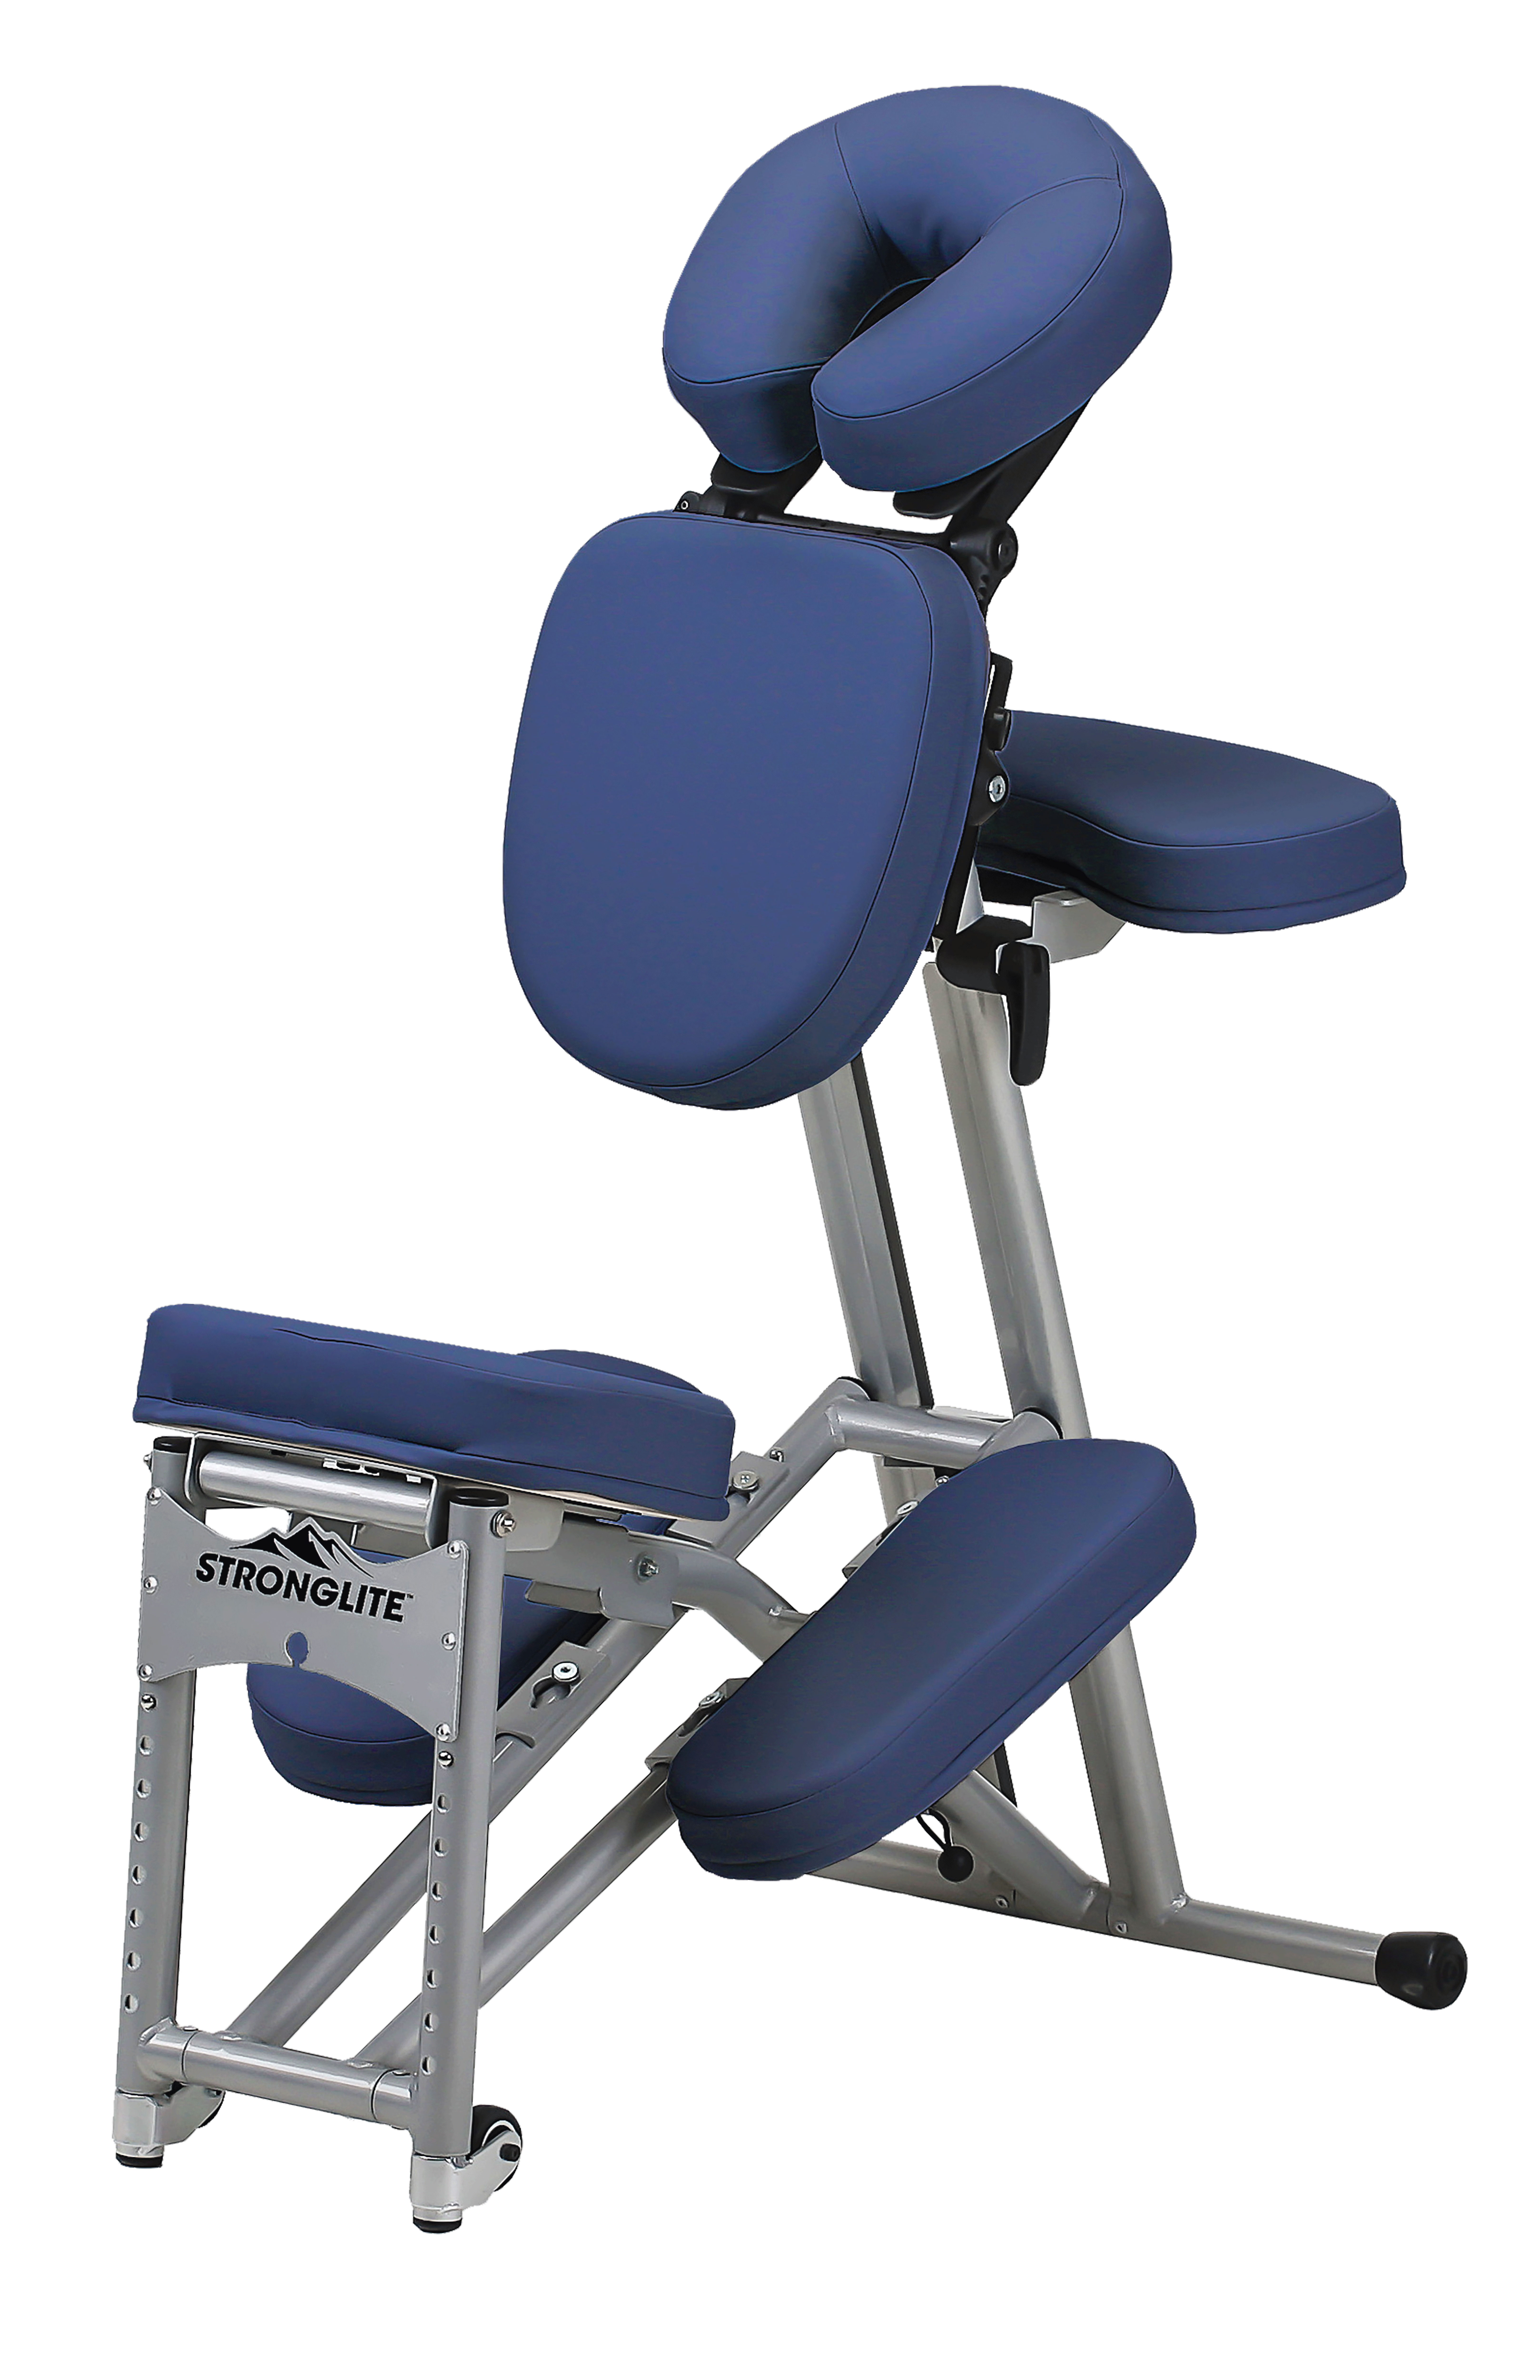 Chair massage therapy - Stronglite Ergo Pro Ii